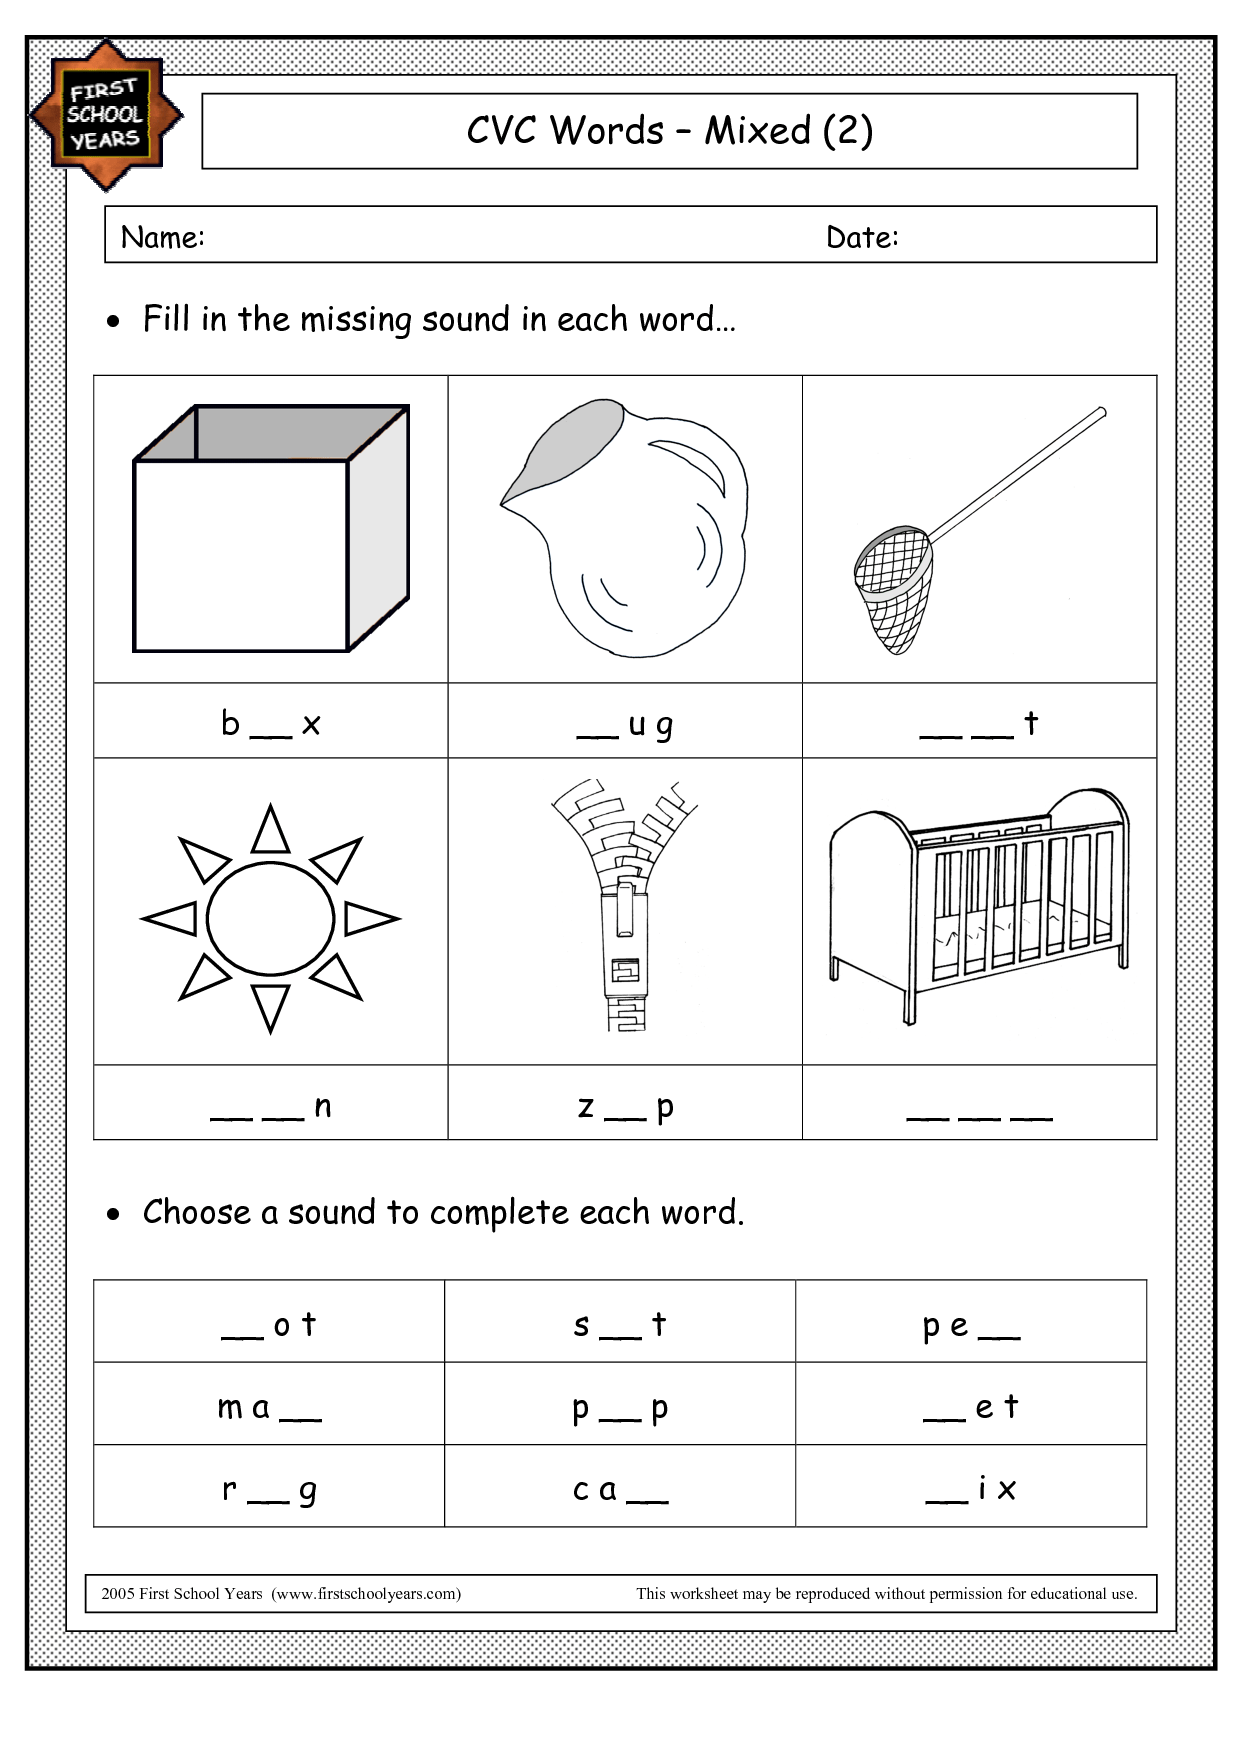 Cvc Dice Worksheet